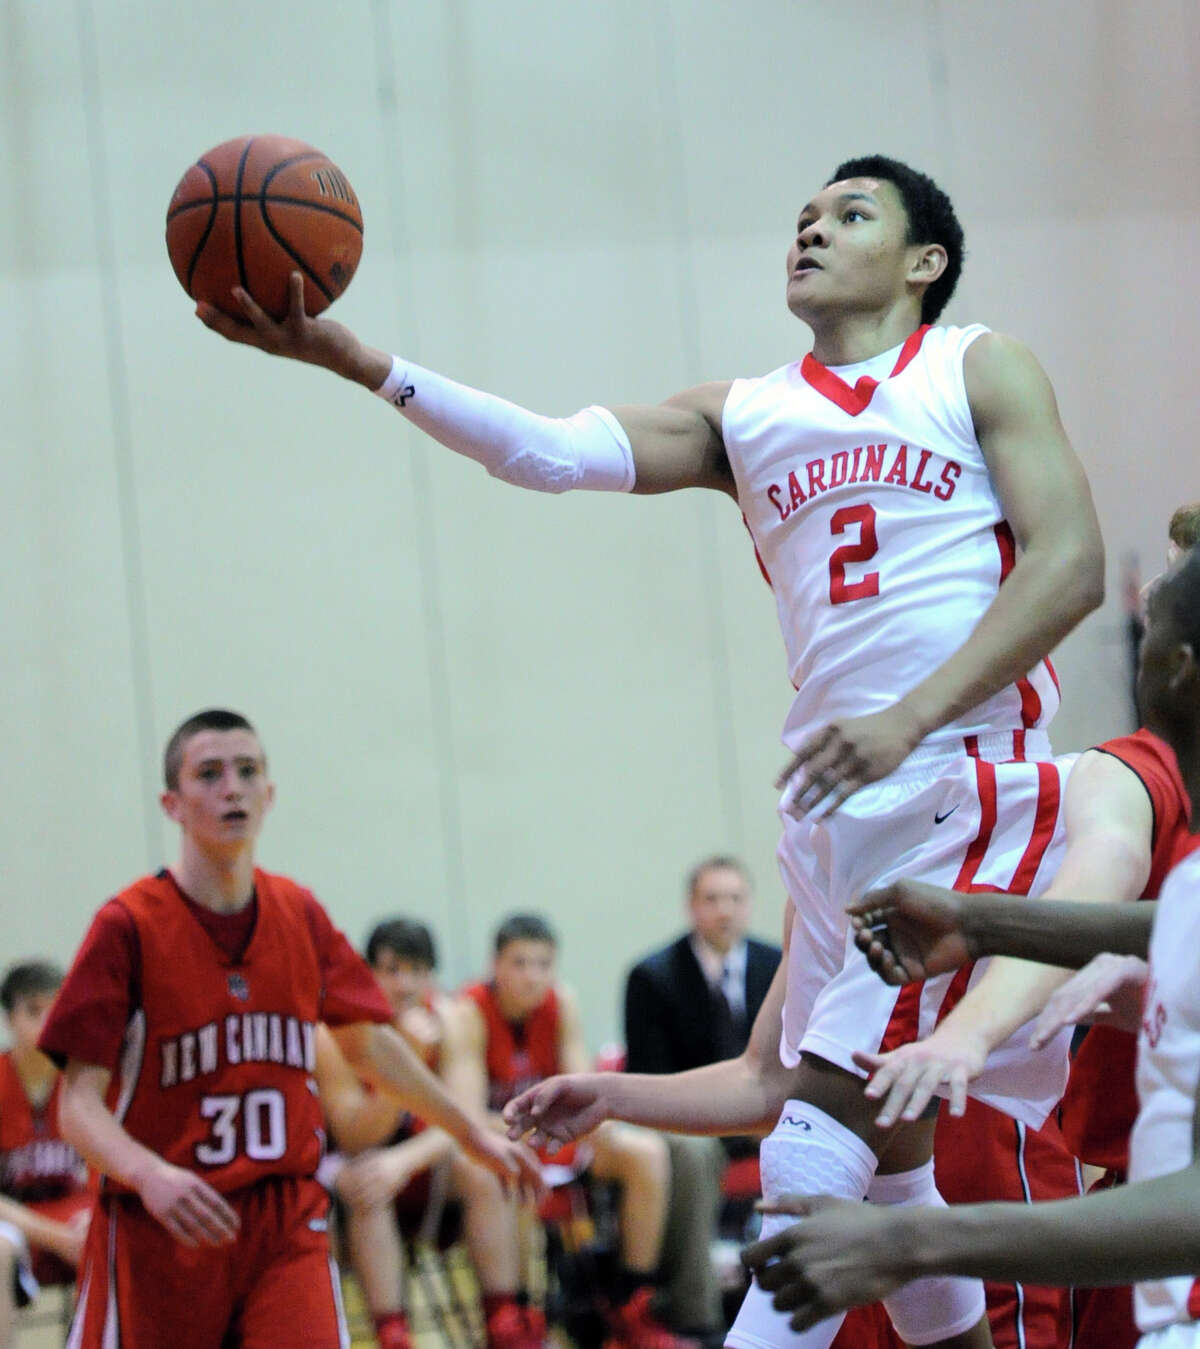 At right, C.J. Byrd (# 2) of Greenwich goes in for a lay-up getting past New Canaan's Paul Hagopian (# 30), left, during the boys varsity basketball game between Greenwich High School and New Canaan High School at Greenwich, Wednesday night, Dec. 18, 2013.